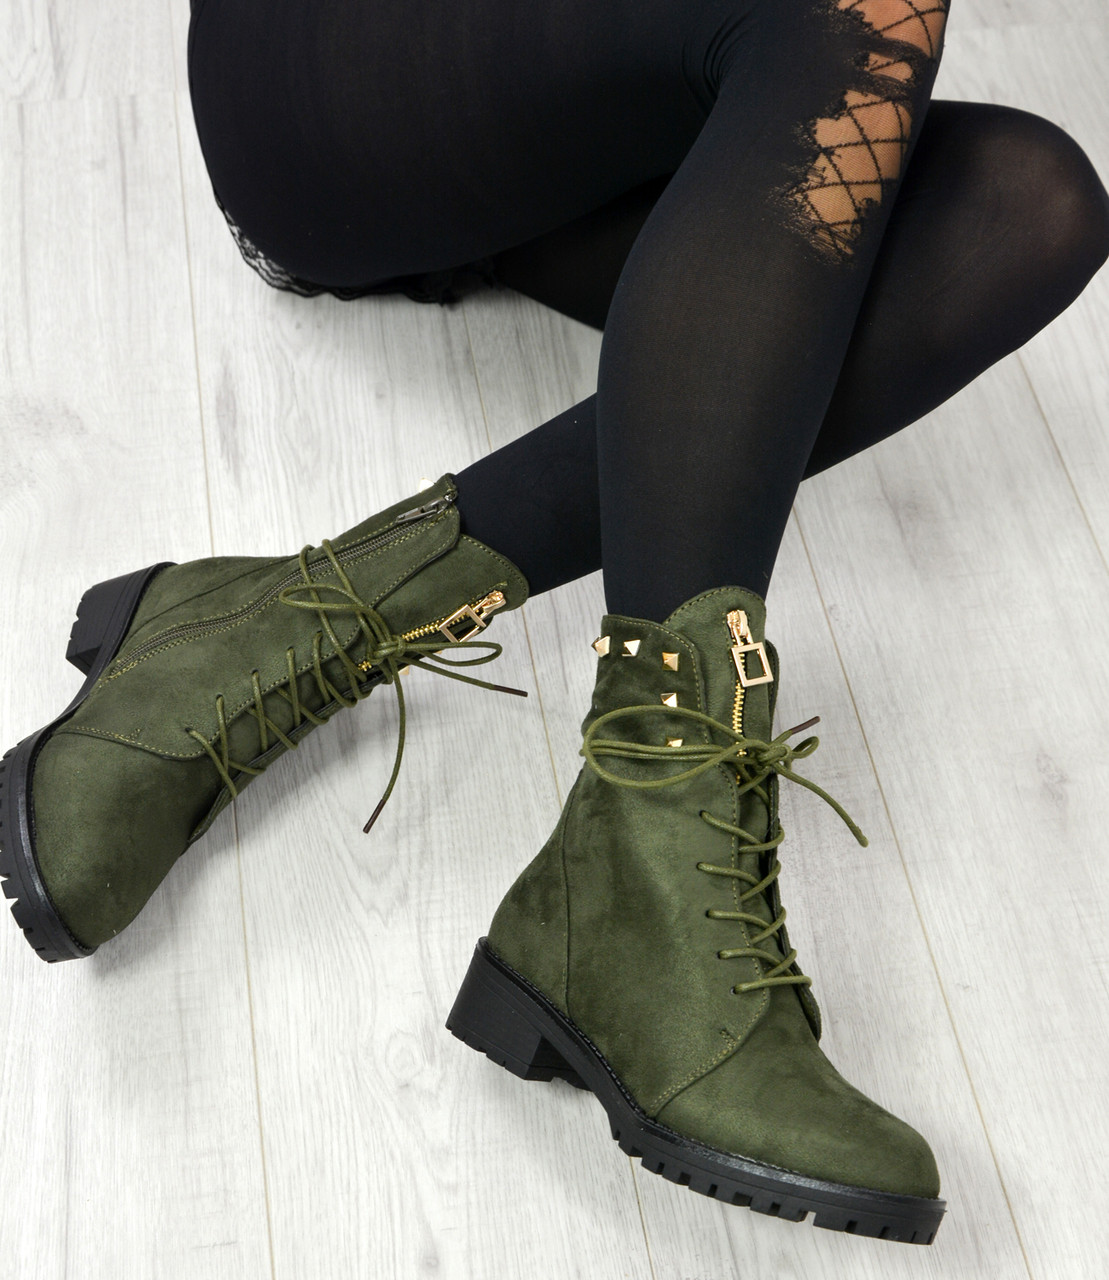 Brand New Womens Ladies Girls Desert Hiking Lace Up Ankle Boots Side Zip  Fashion Shoes Size Uk 3-8 da4b4a8342